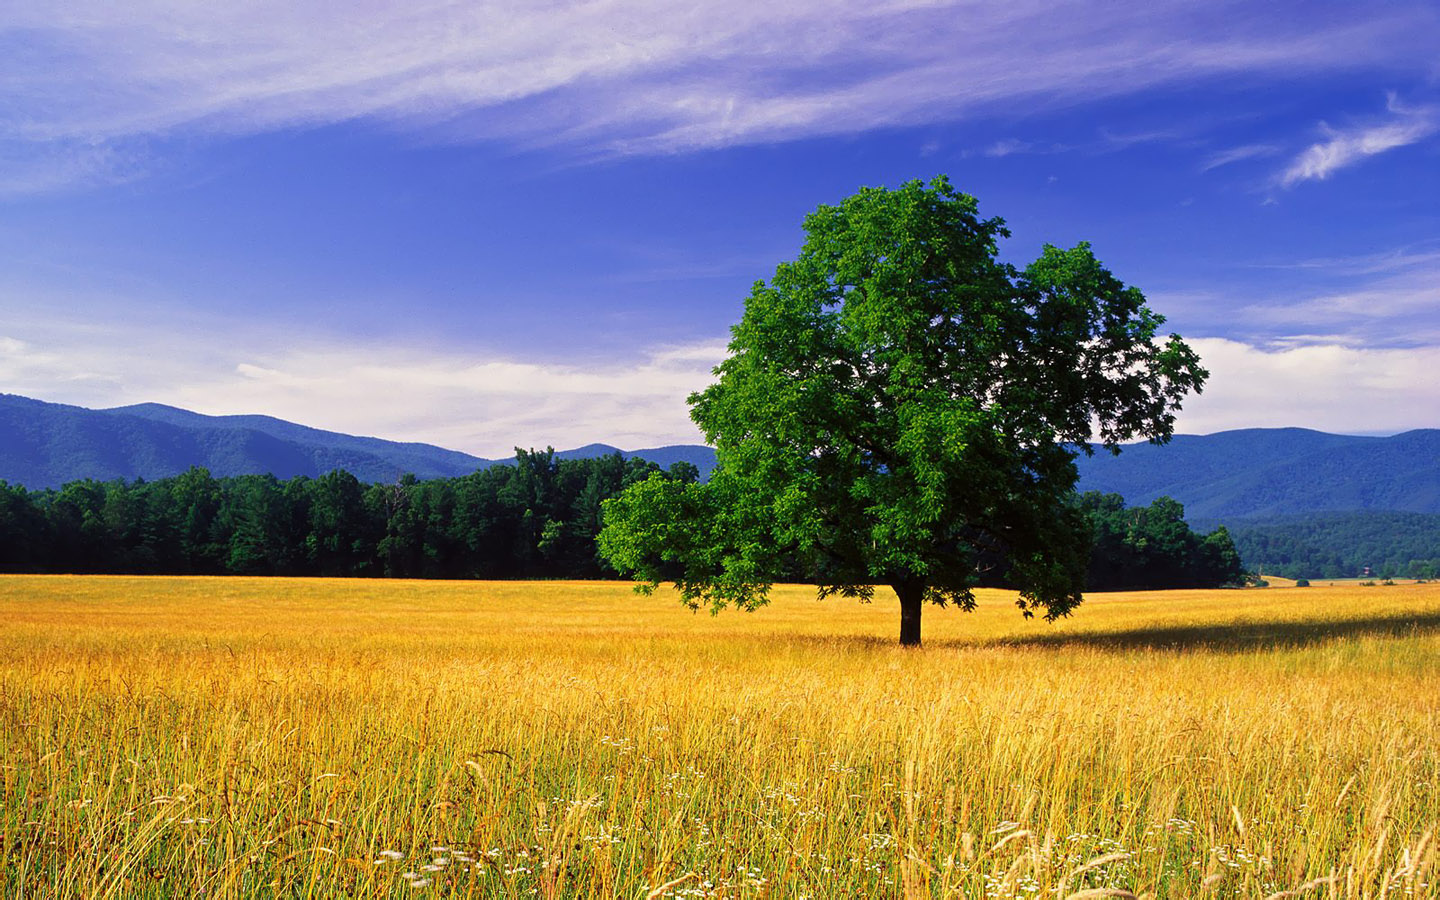 nature scene wallpapers, hd scene wallpapers, hd natural wallpapers